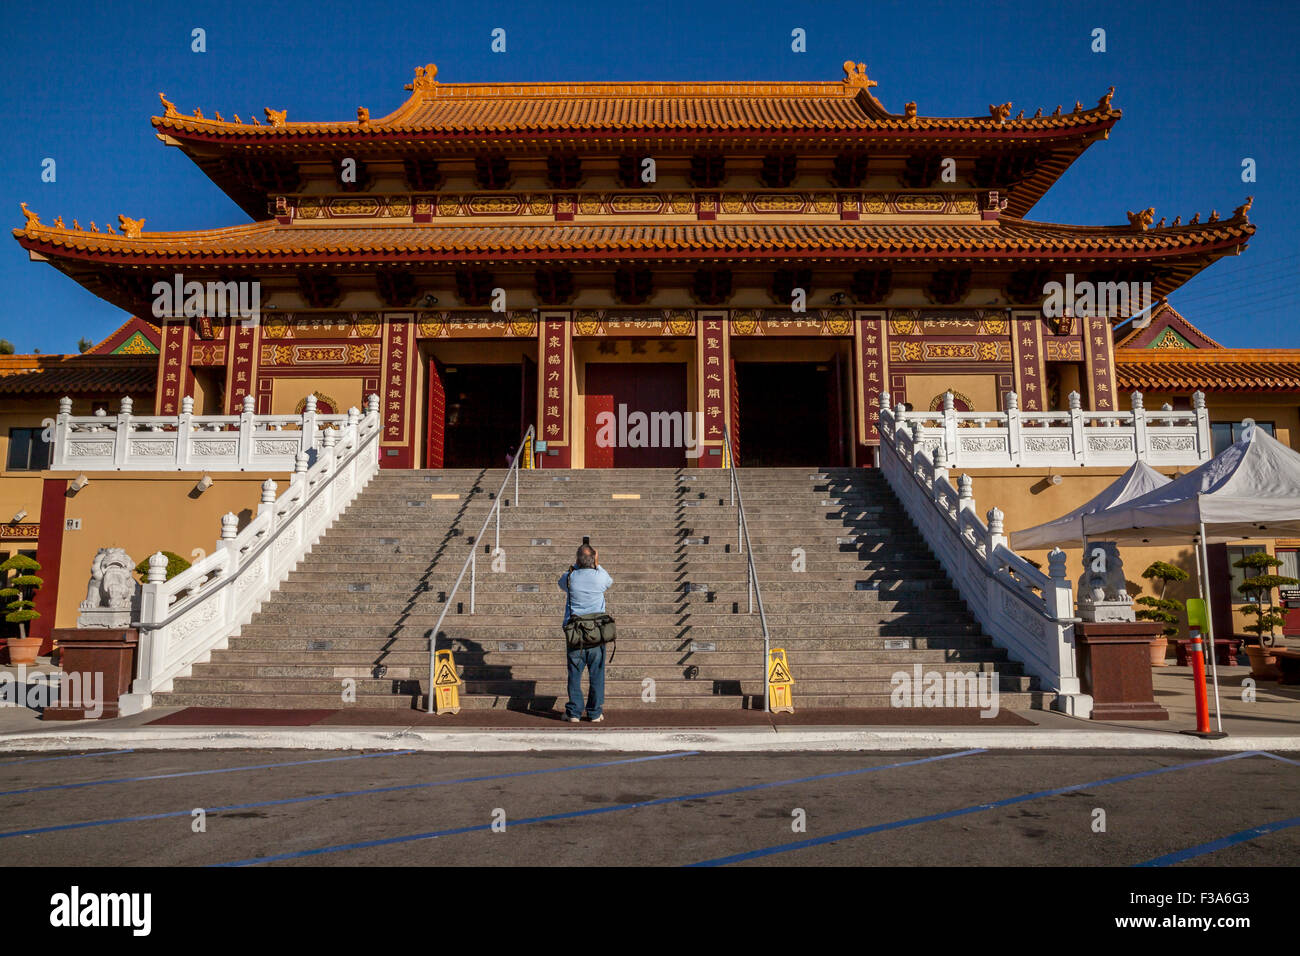 Photographer taking pictures of the Hsi Lai Buddhist Temple, Hacienda Heights, California, USA Stock Photo